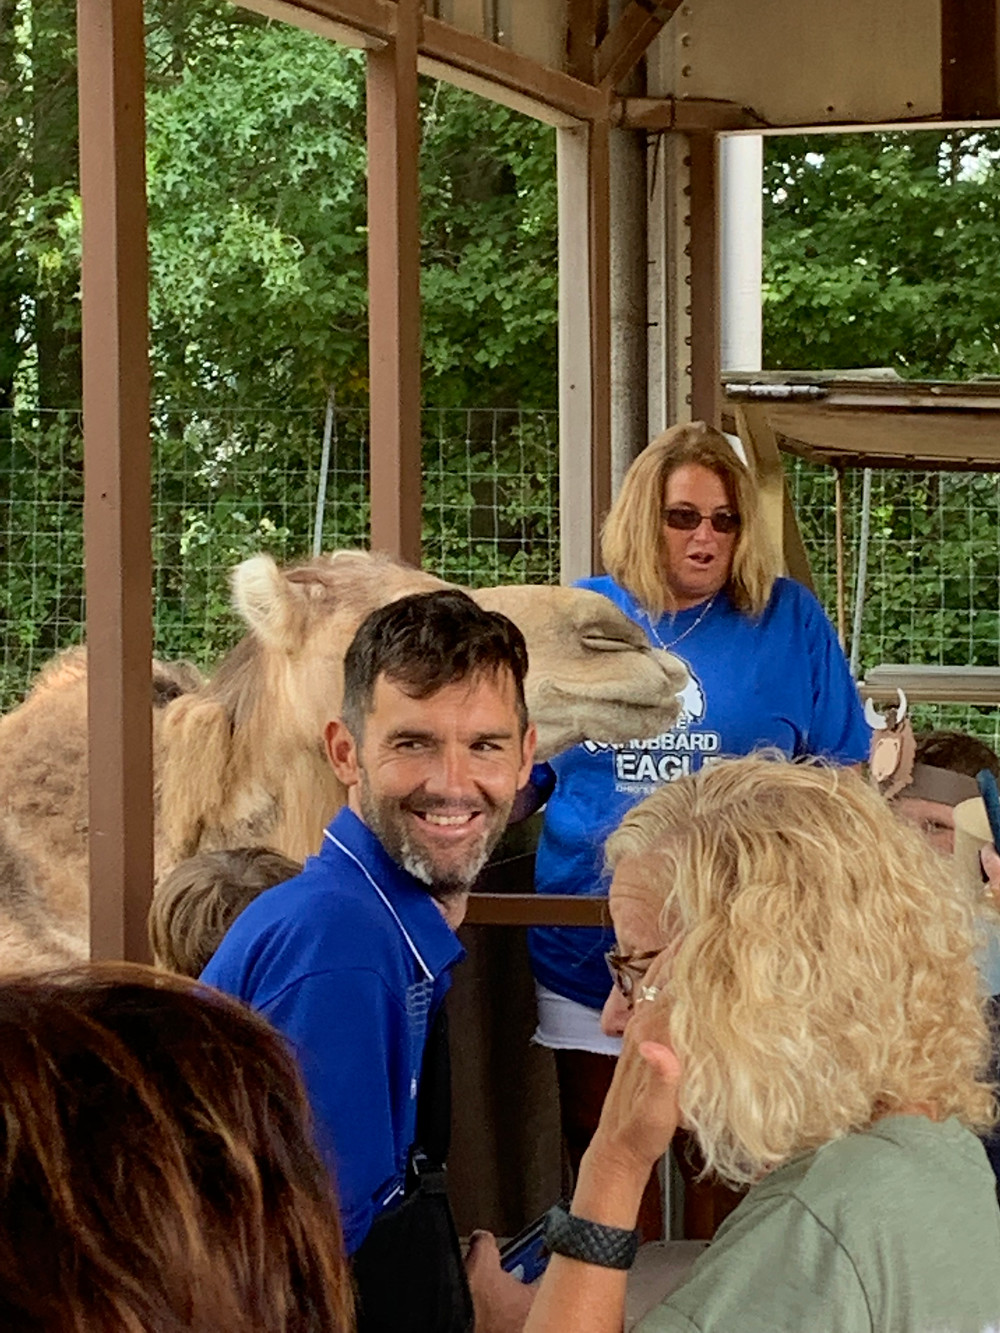 Chaperones with animals